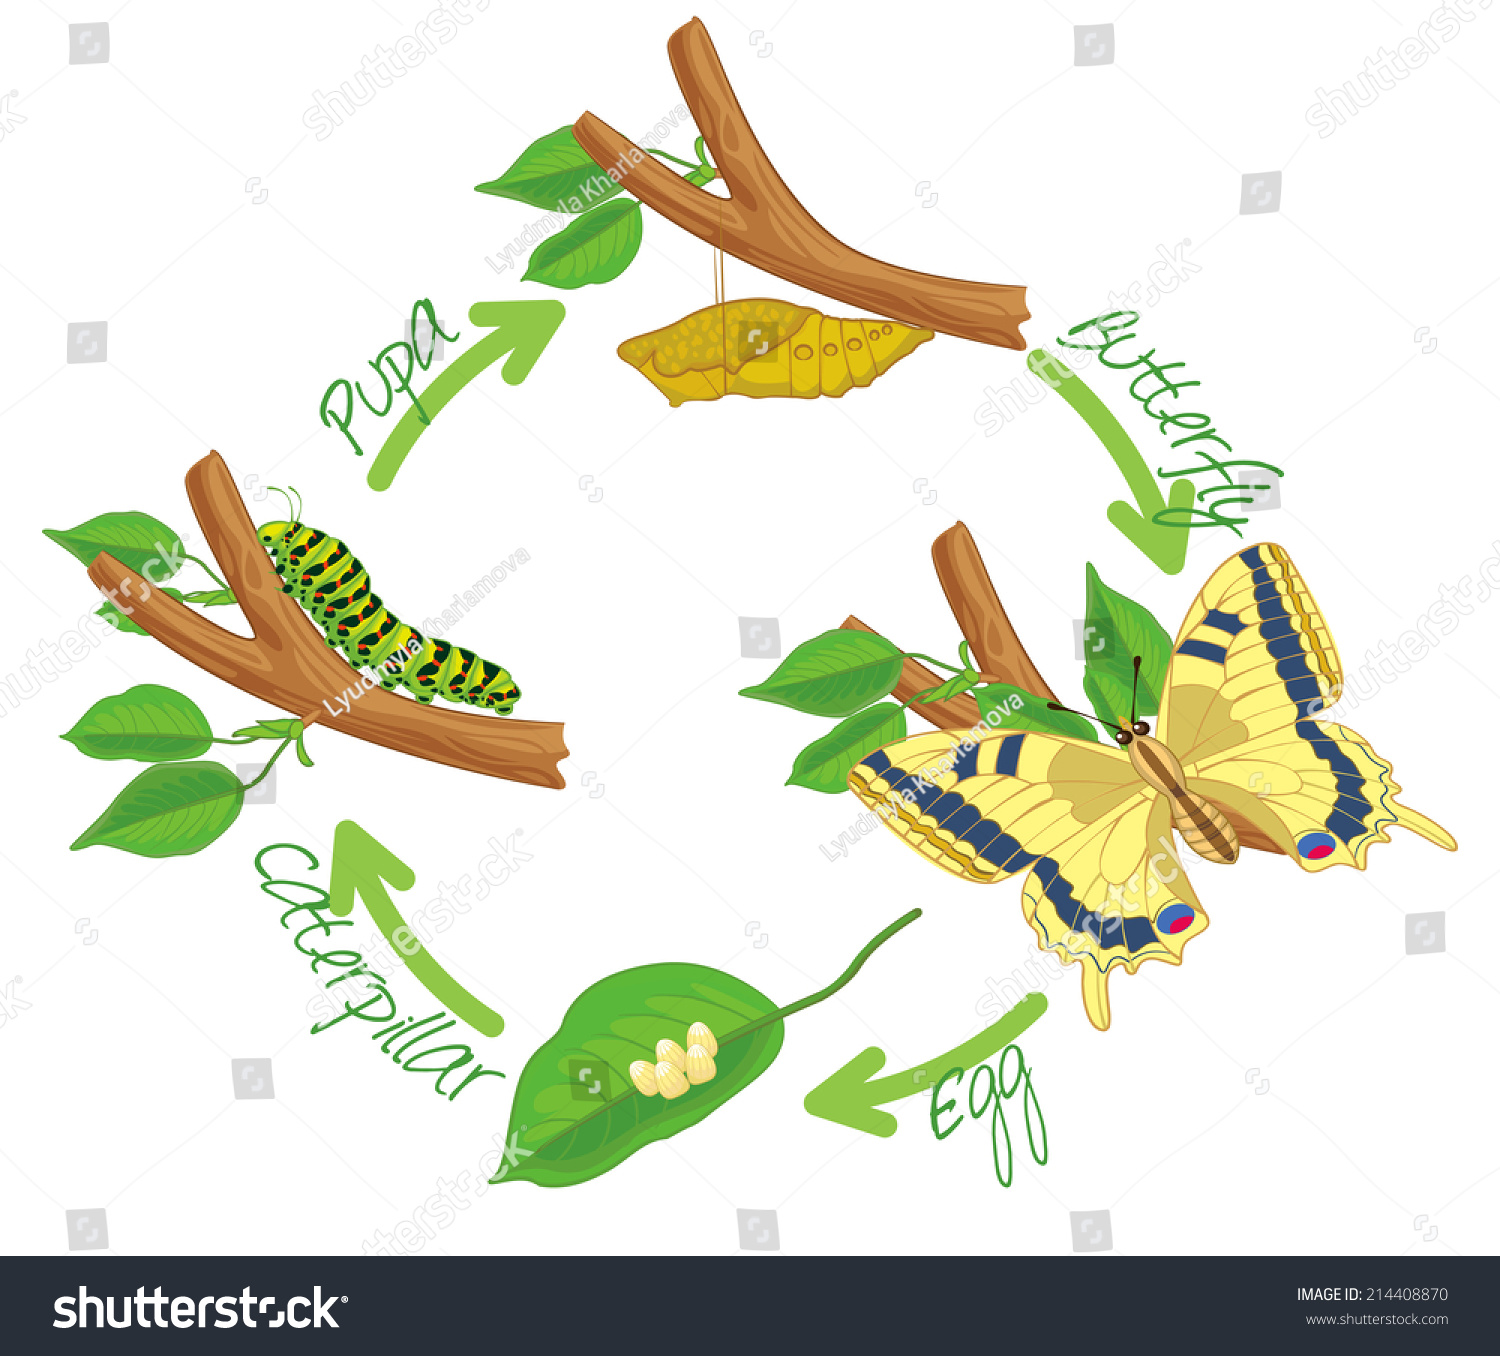 Worksheet What Is The Life Cycle Of A Caterpillar metamorphosis butterfly egg caterpillar pupa stock the of life